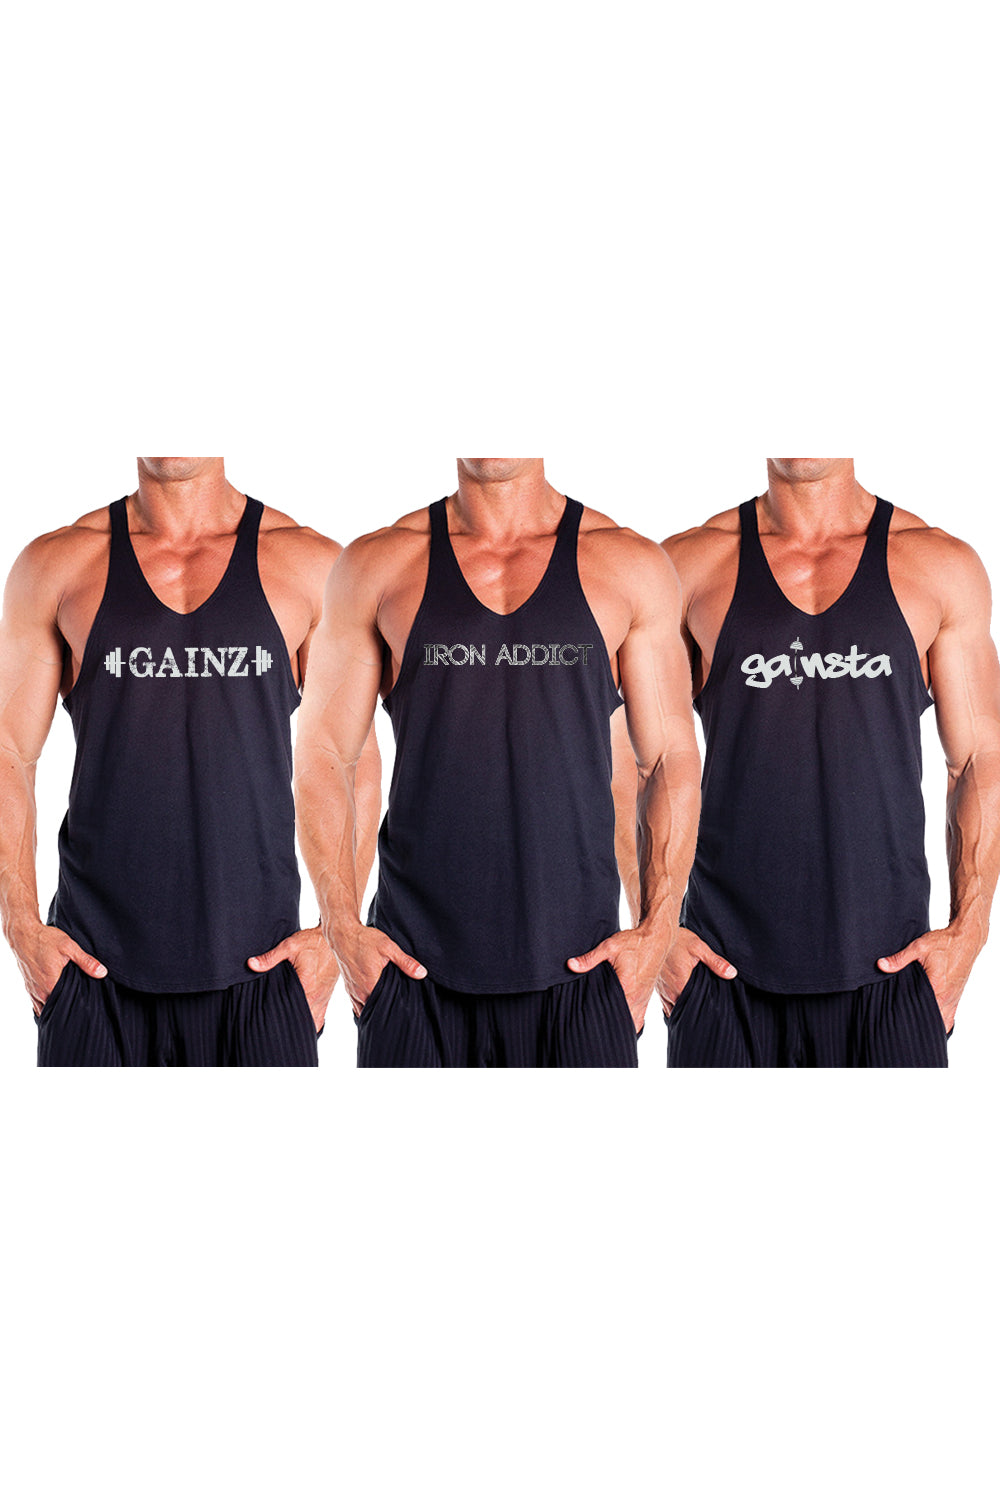 3 PACK - Best Selling Graphic Stringer Tank Tops